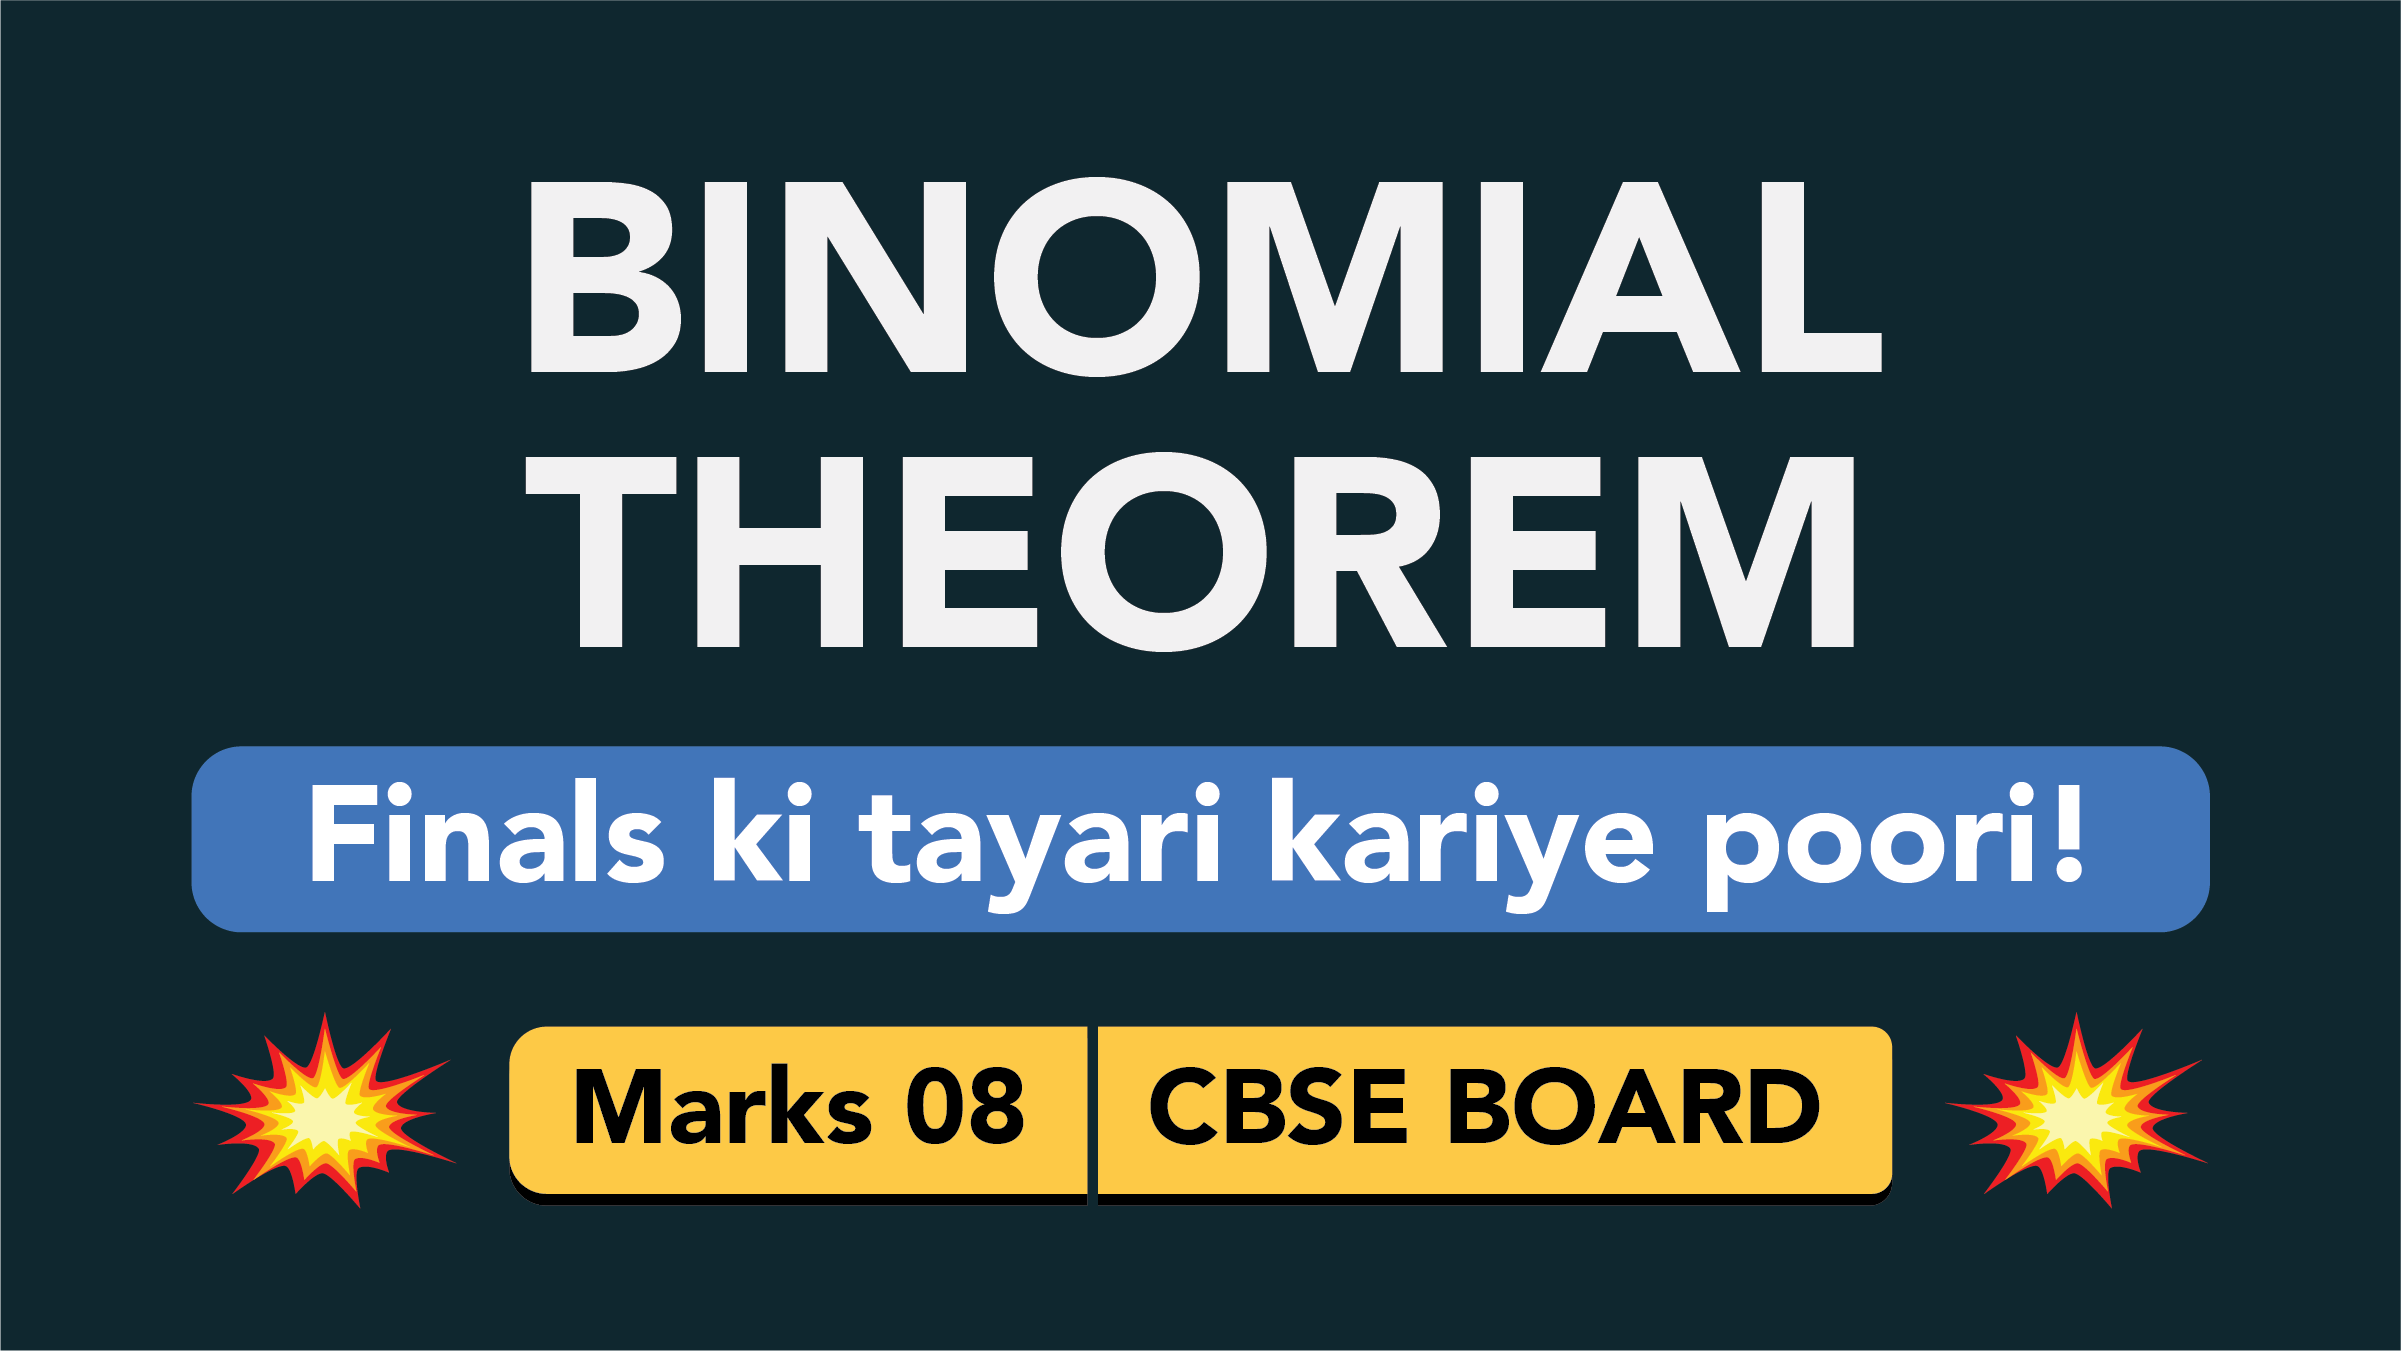 CBSE Board Class 11 BINOMIAL THEOREM || Weightage and Important Topics